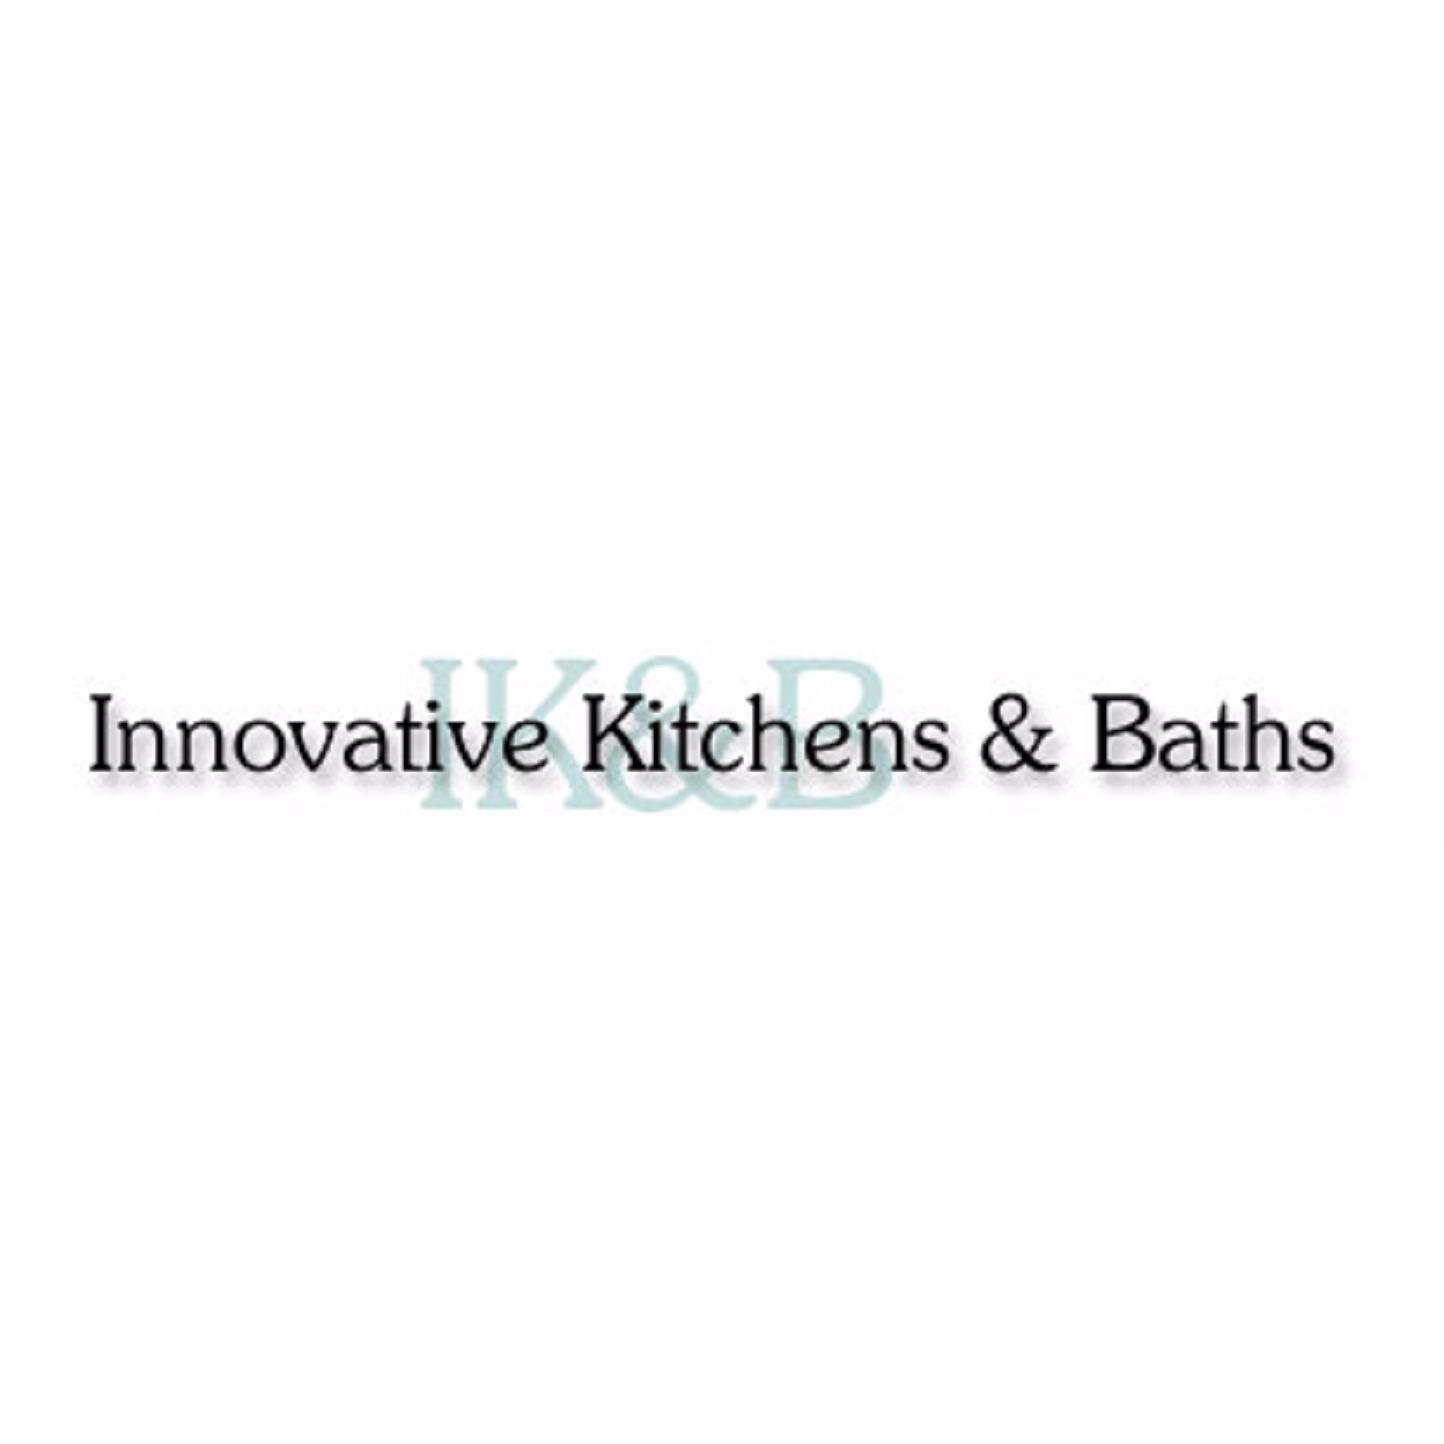 Innovative Kitchens & Baths - Schertz, TX - General Remodelers